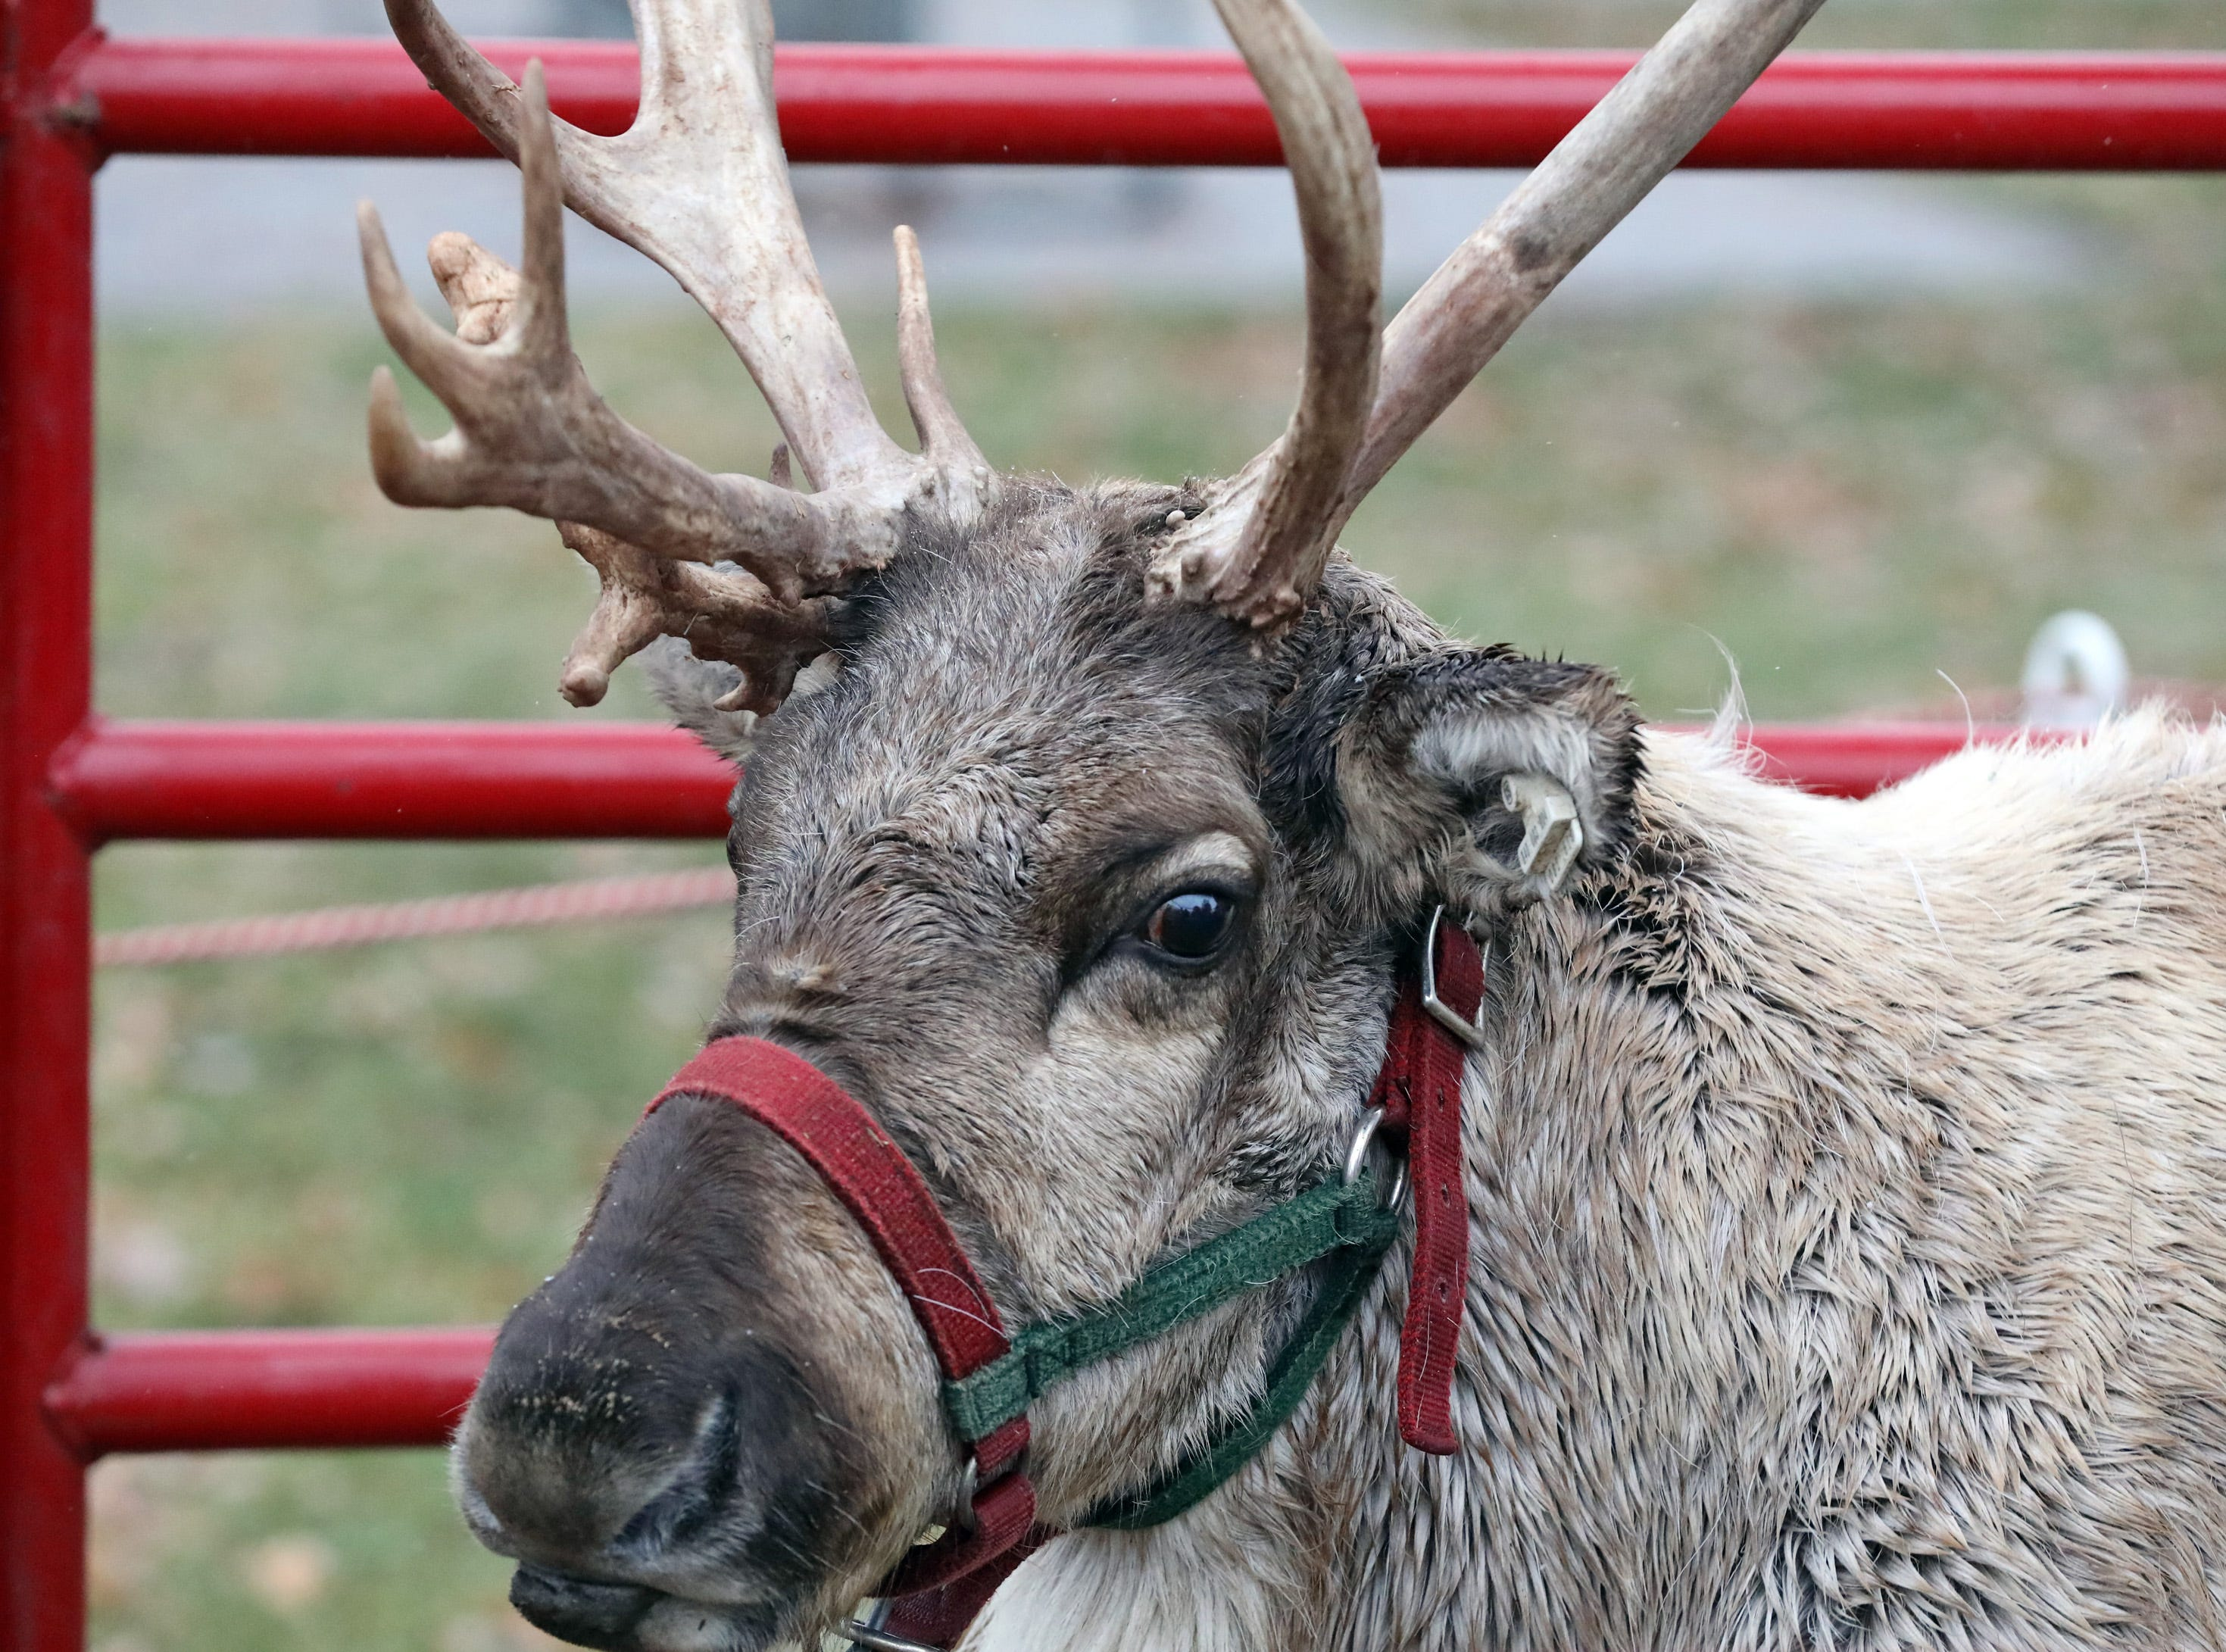 Woody the Reindeer waits for his turn to meet the families attending UCAN's  third annual Light Up Urbandale on Sunday, Dec. 2, 2018 at Lions Park in Urbandale. Holiday festivities included a visit from Santa, crafts, goodies, official tree lighting ceremony, live reindeer and entertainment.